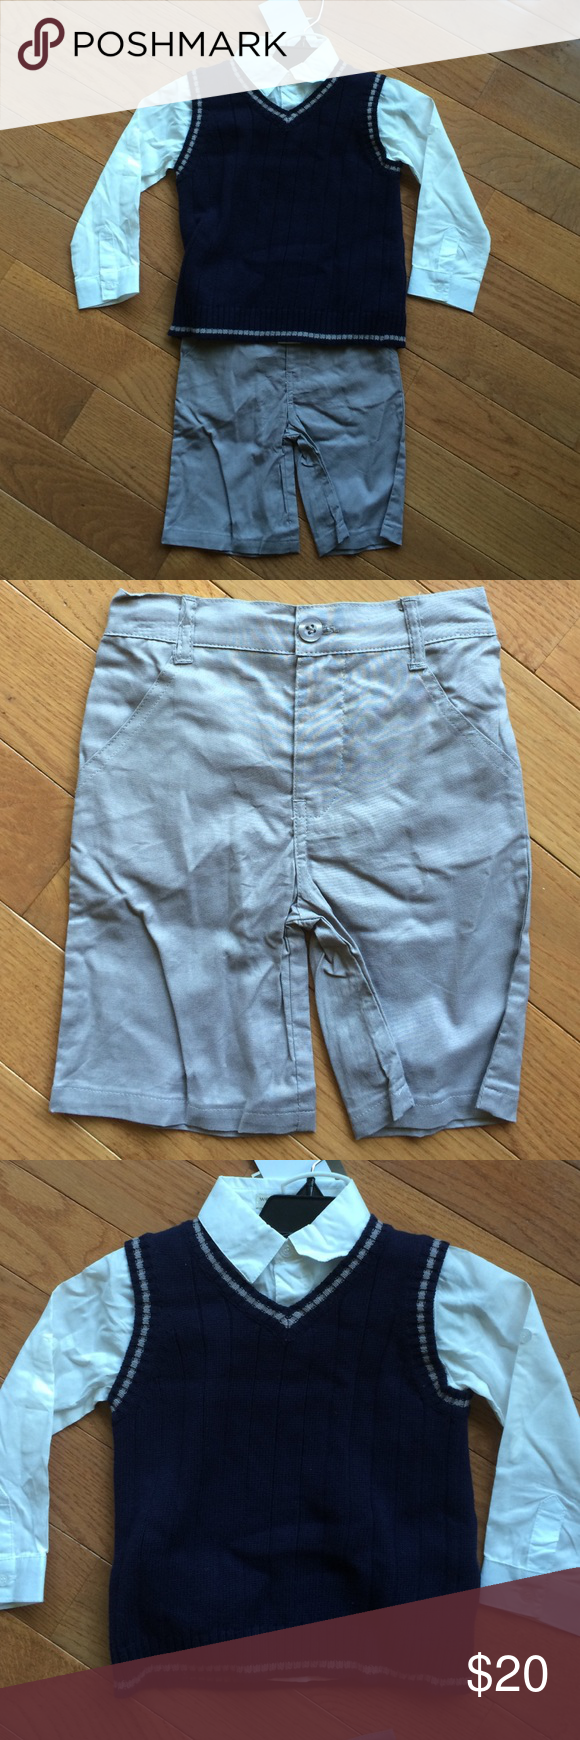 3 piece outfit. NWT | Shorts, D and Gray shorts